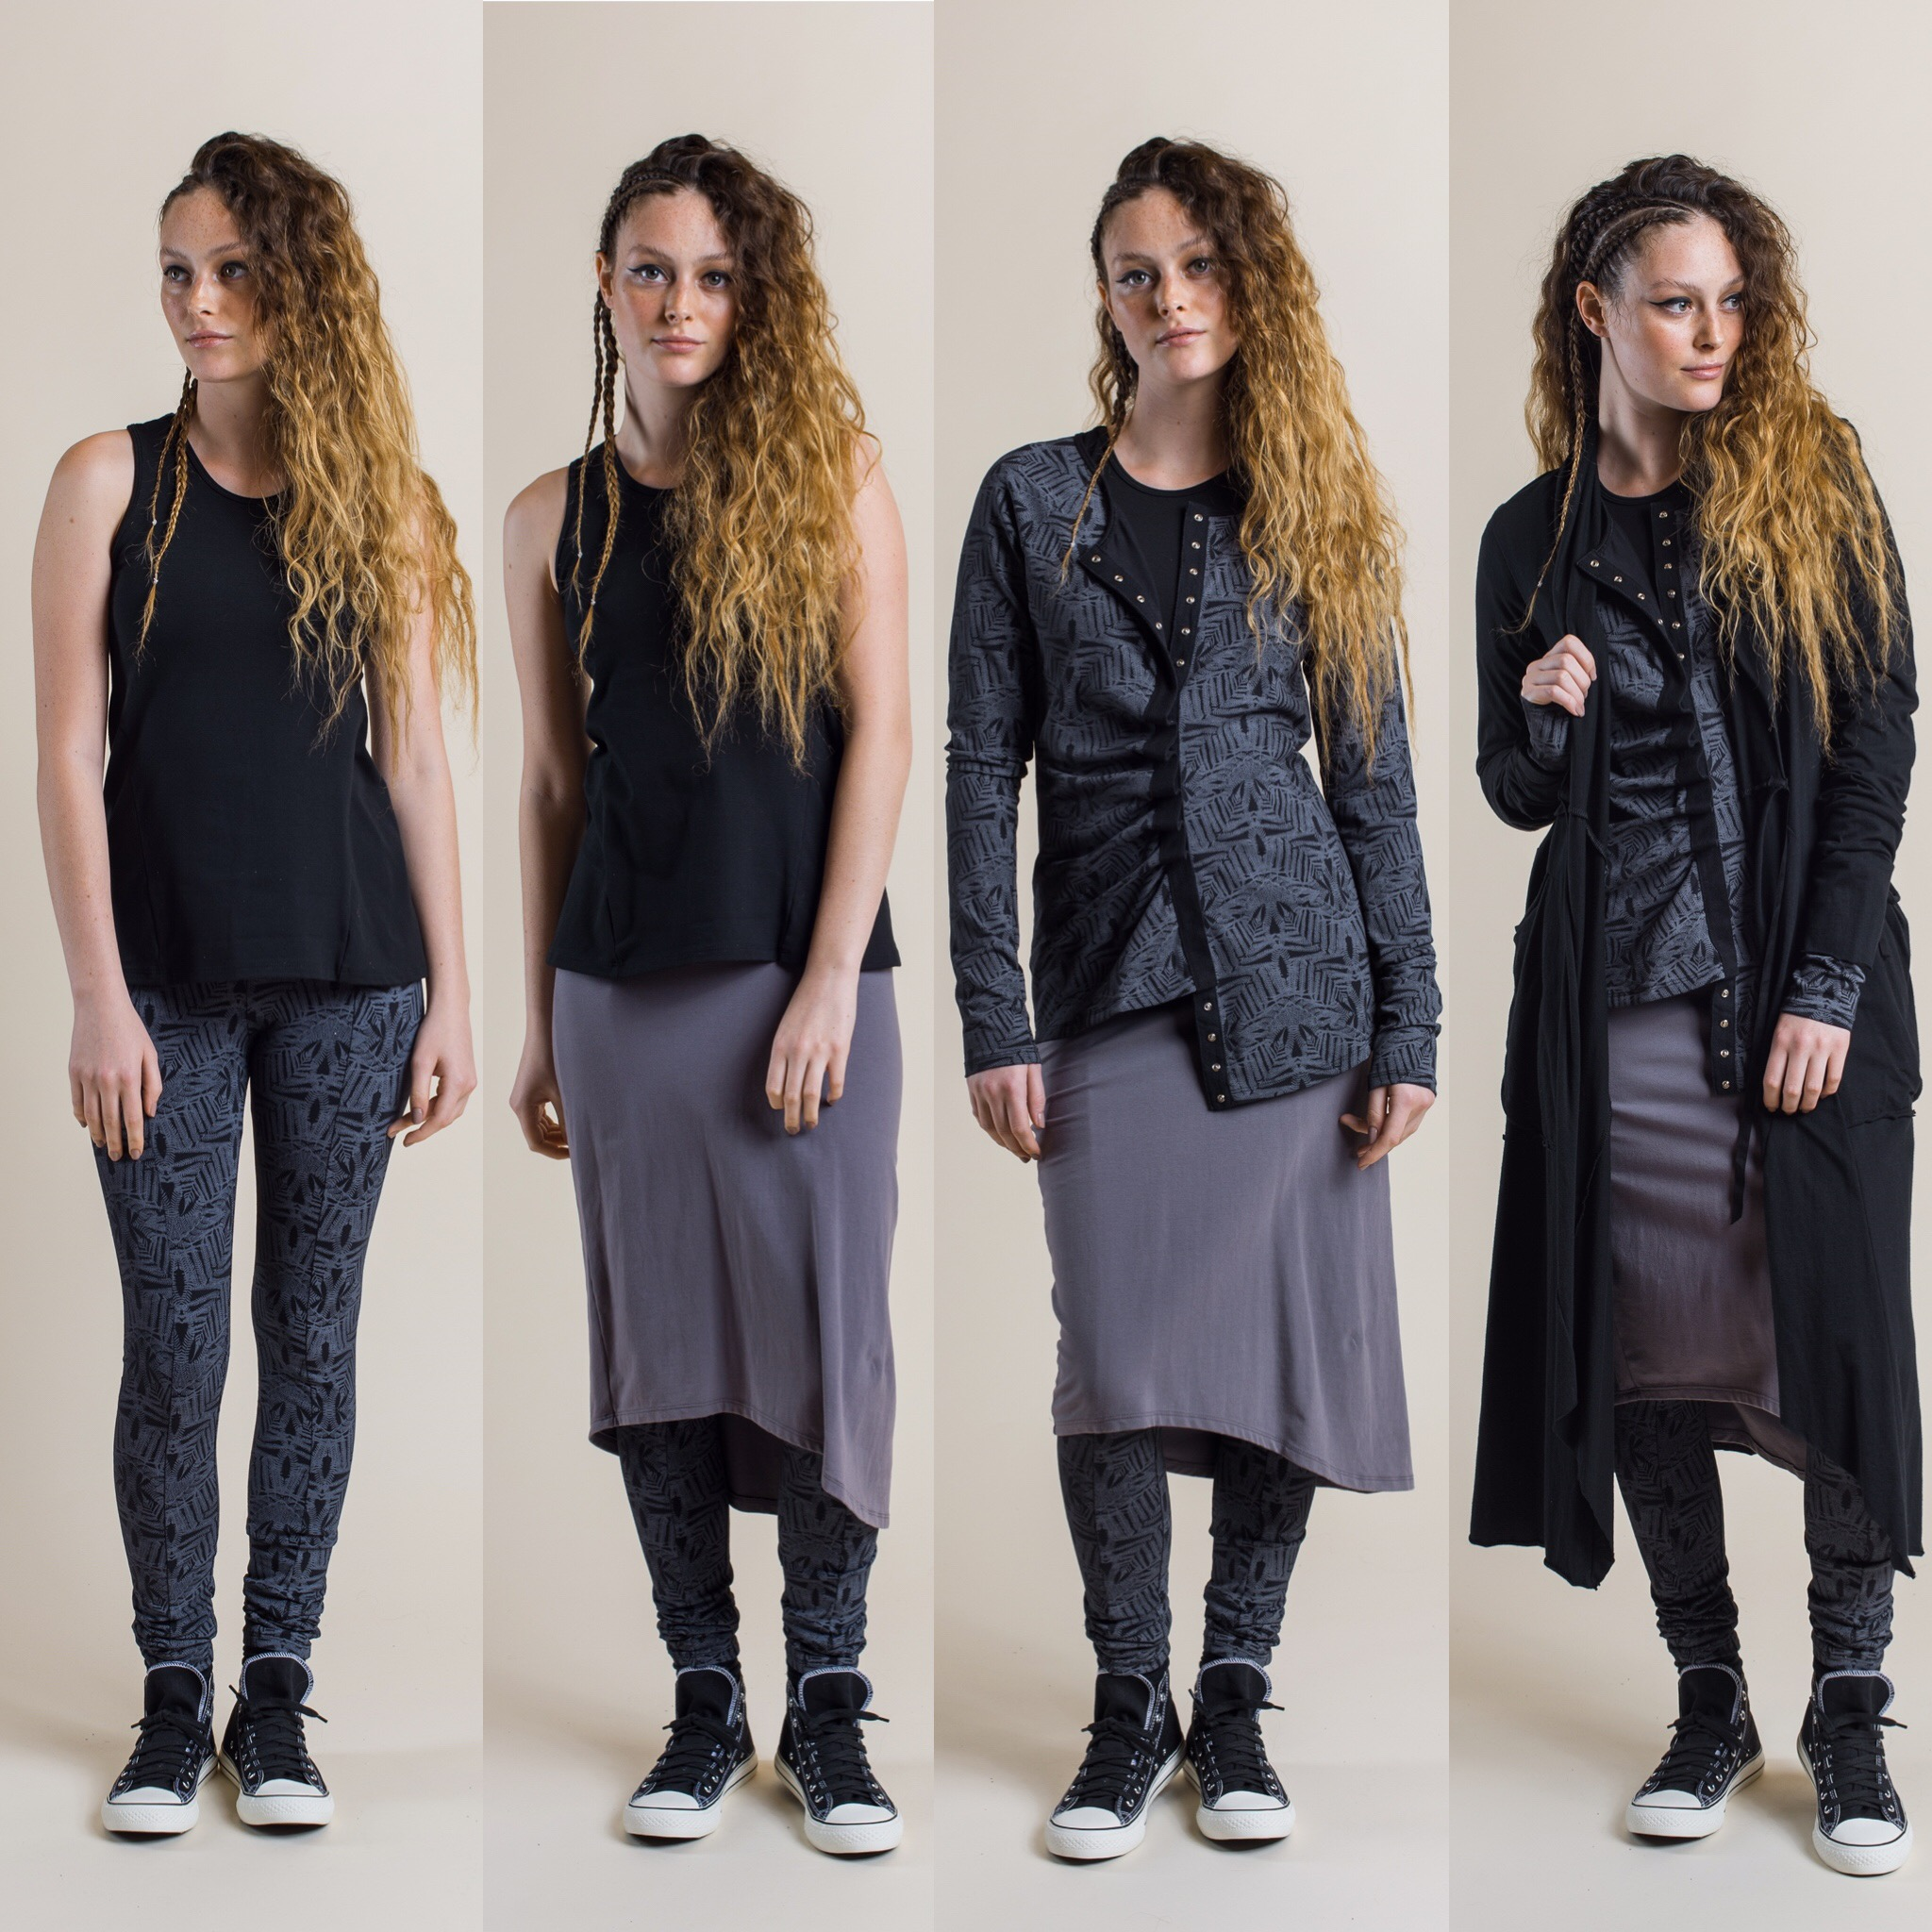 Fern Printed leggings in shadow with Tansy Top in black, add Jezabel skirt in dove, add Camille long Cardi in shadow, then add Annabel Coat in black.